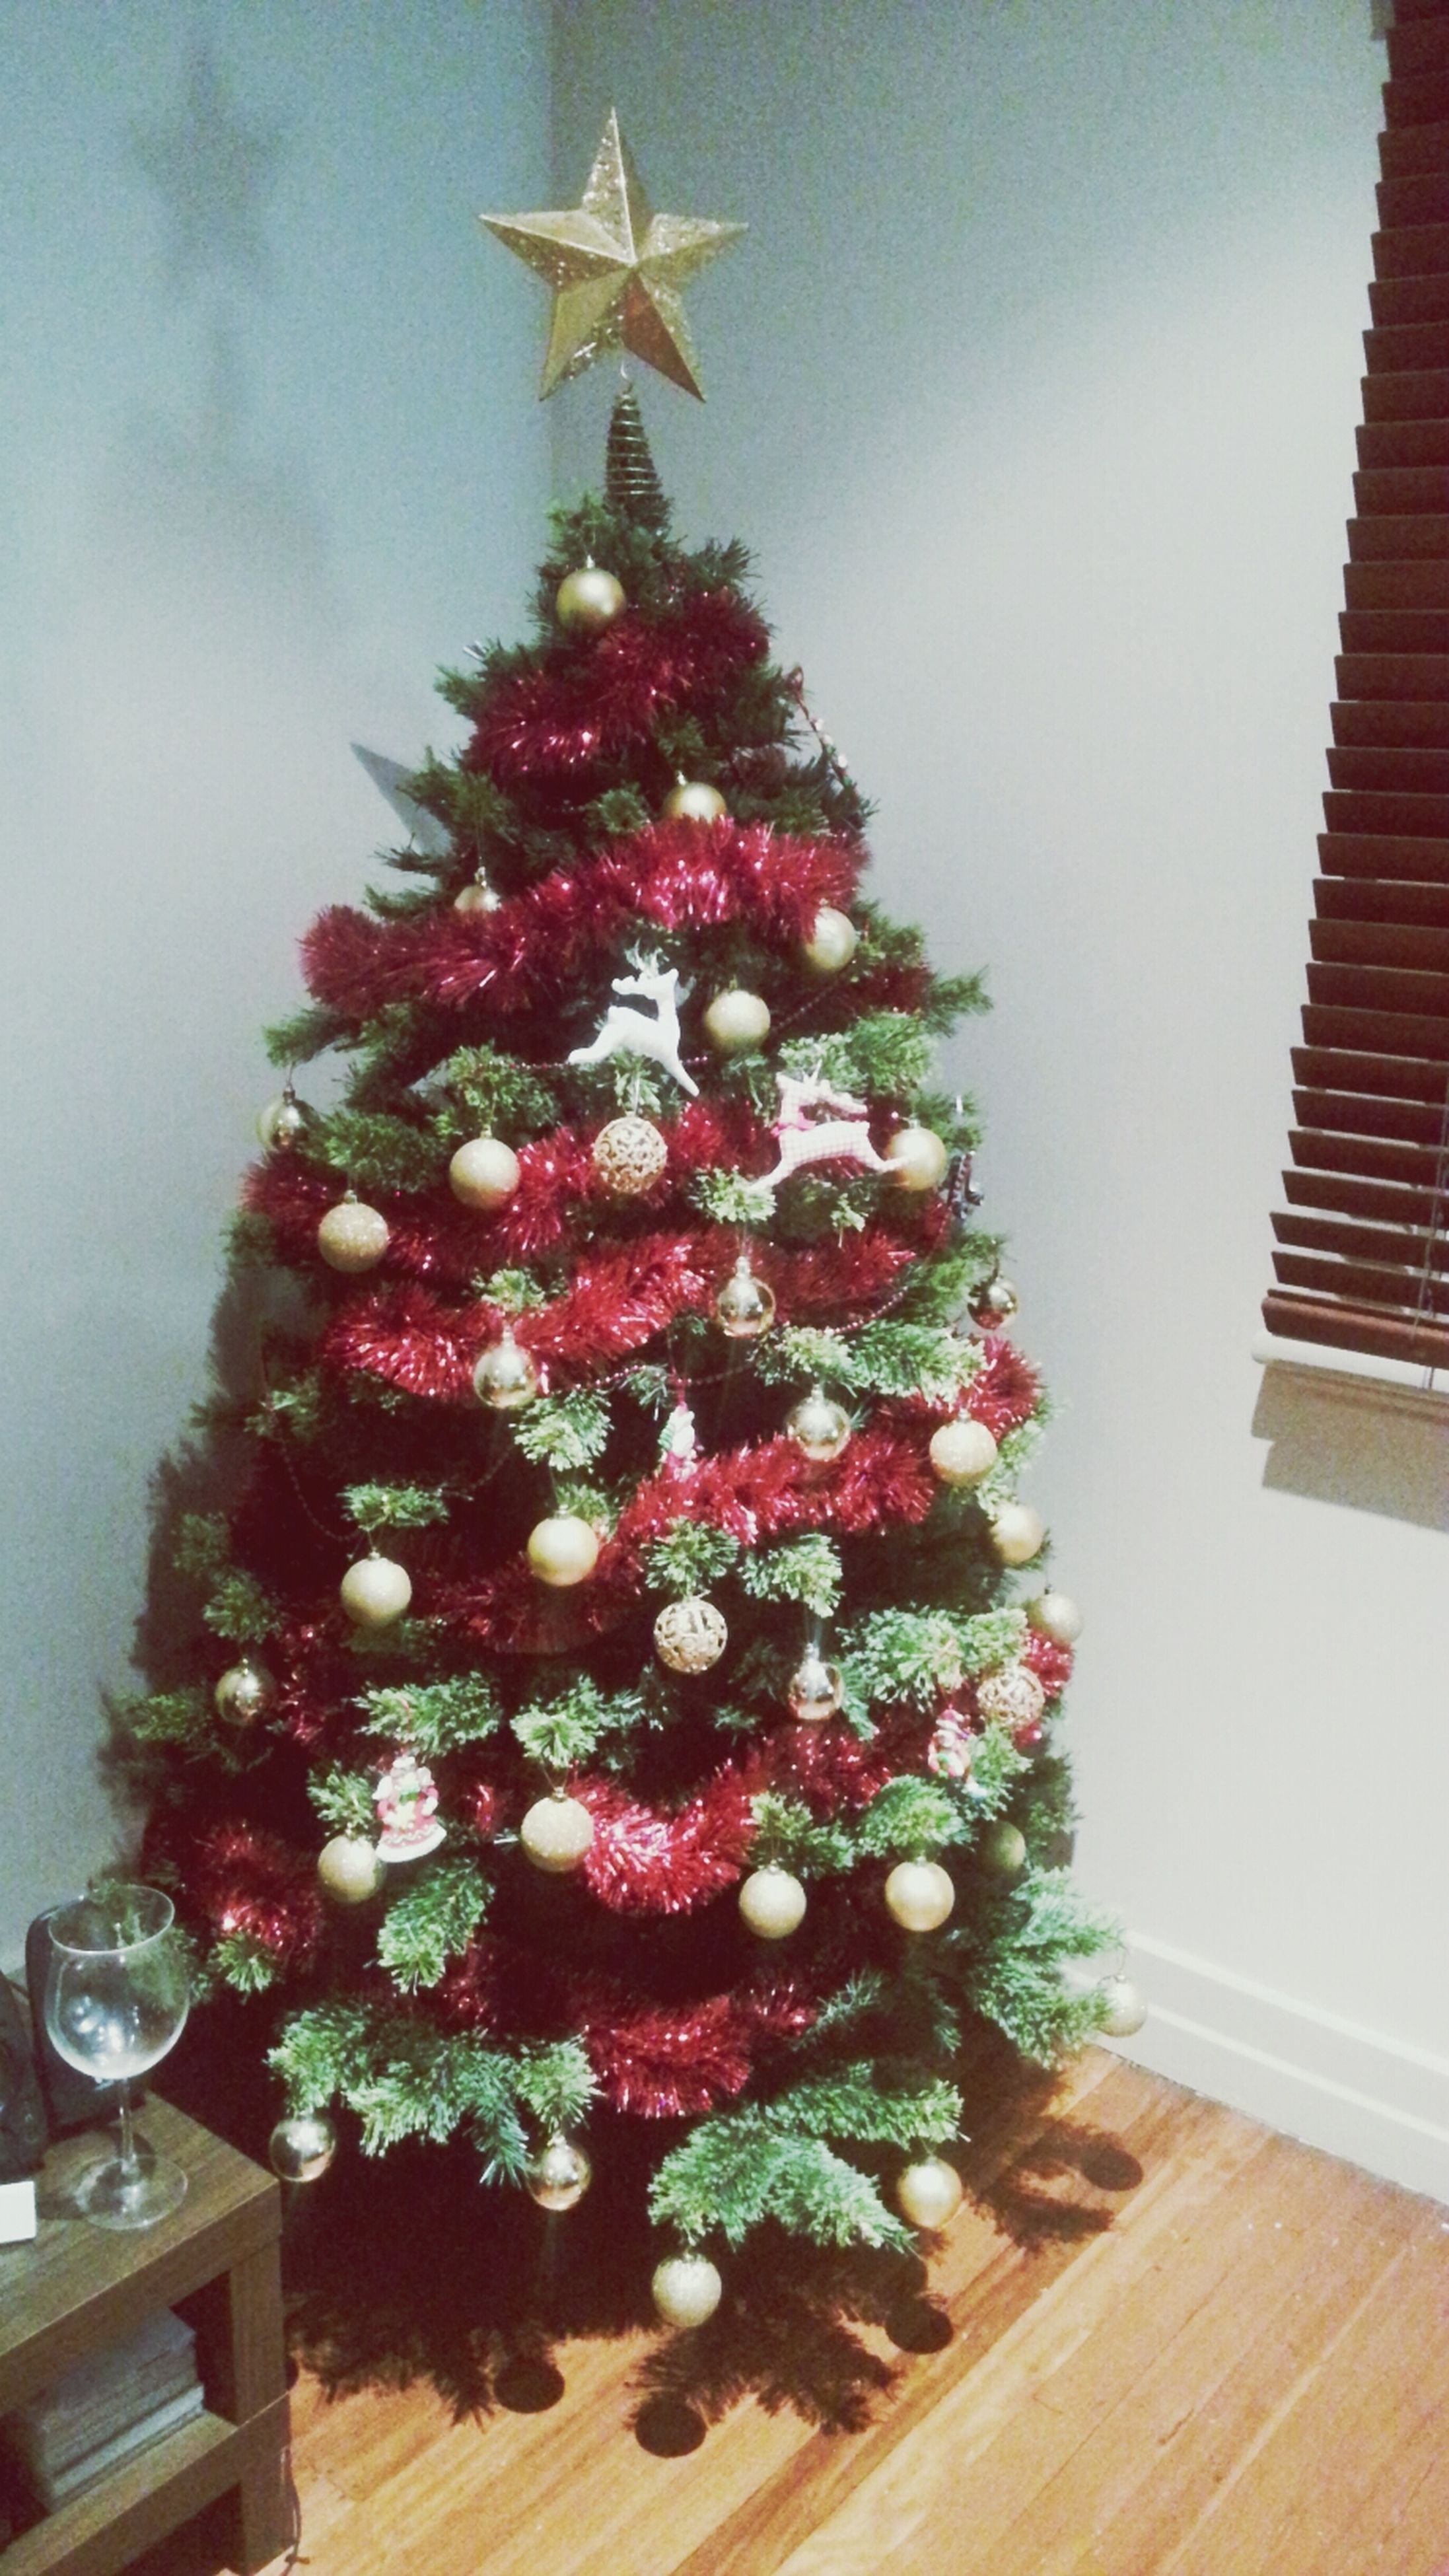 indoors, decoration, flower, christmas, celebration, christmas decoration, hanging, table, christmas tree, decor, home interior, freshness, tradition, still life, architecture, built structure, no people, low angle view, close-up, vase